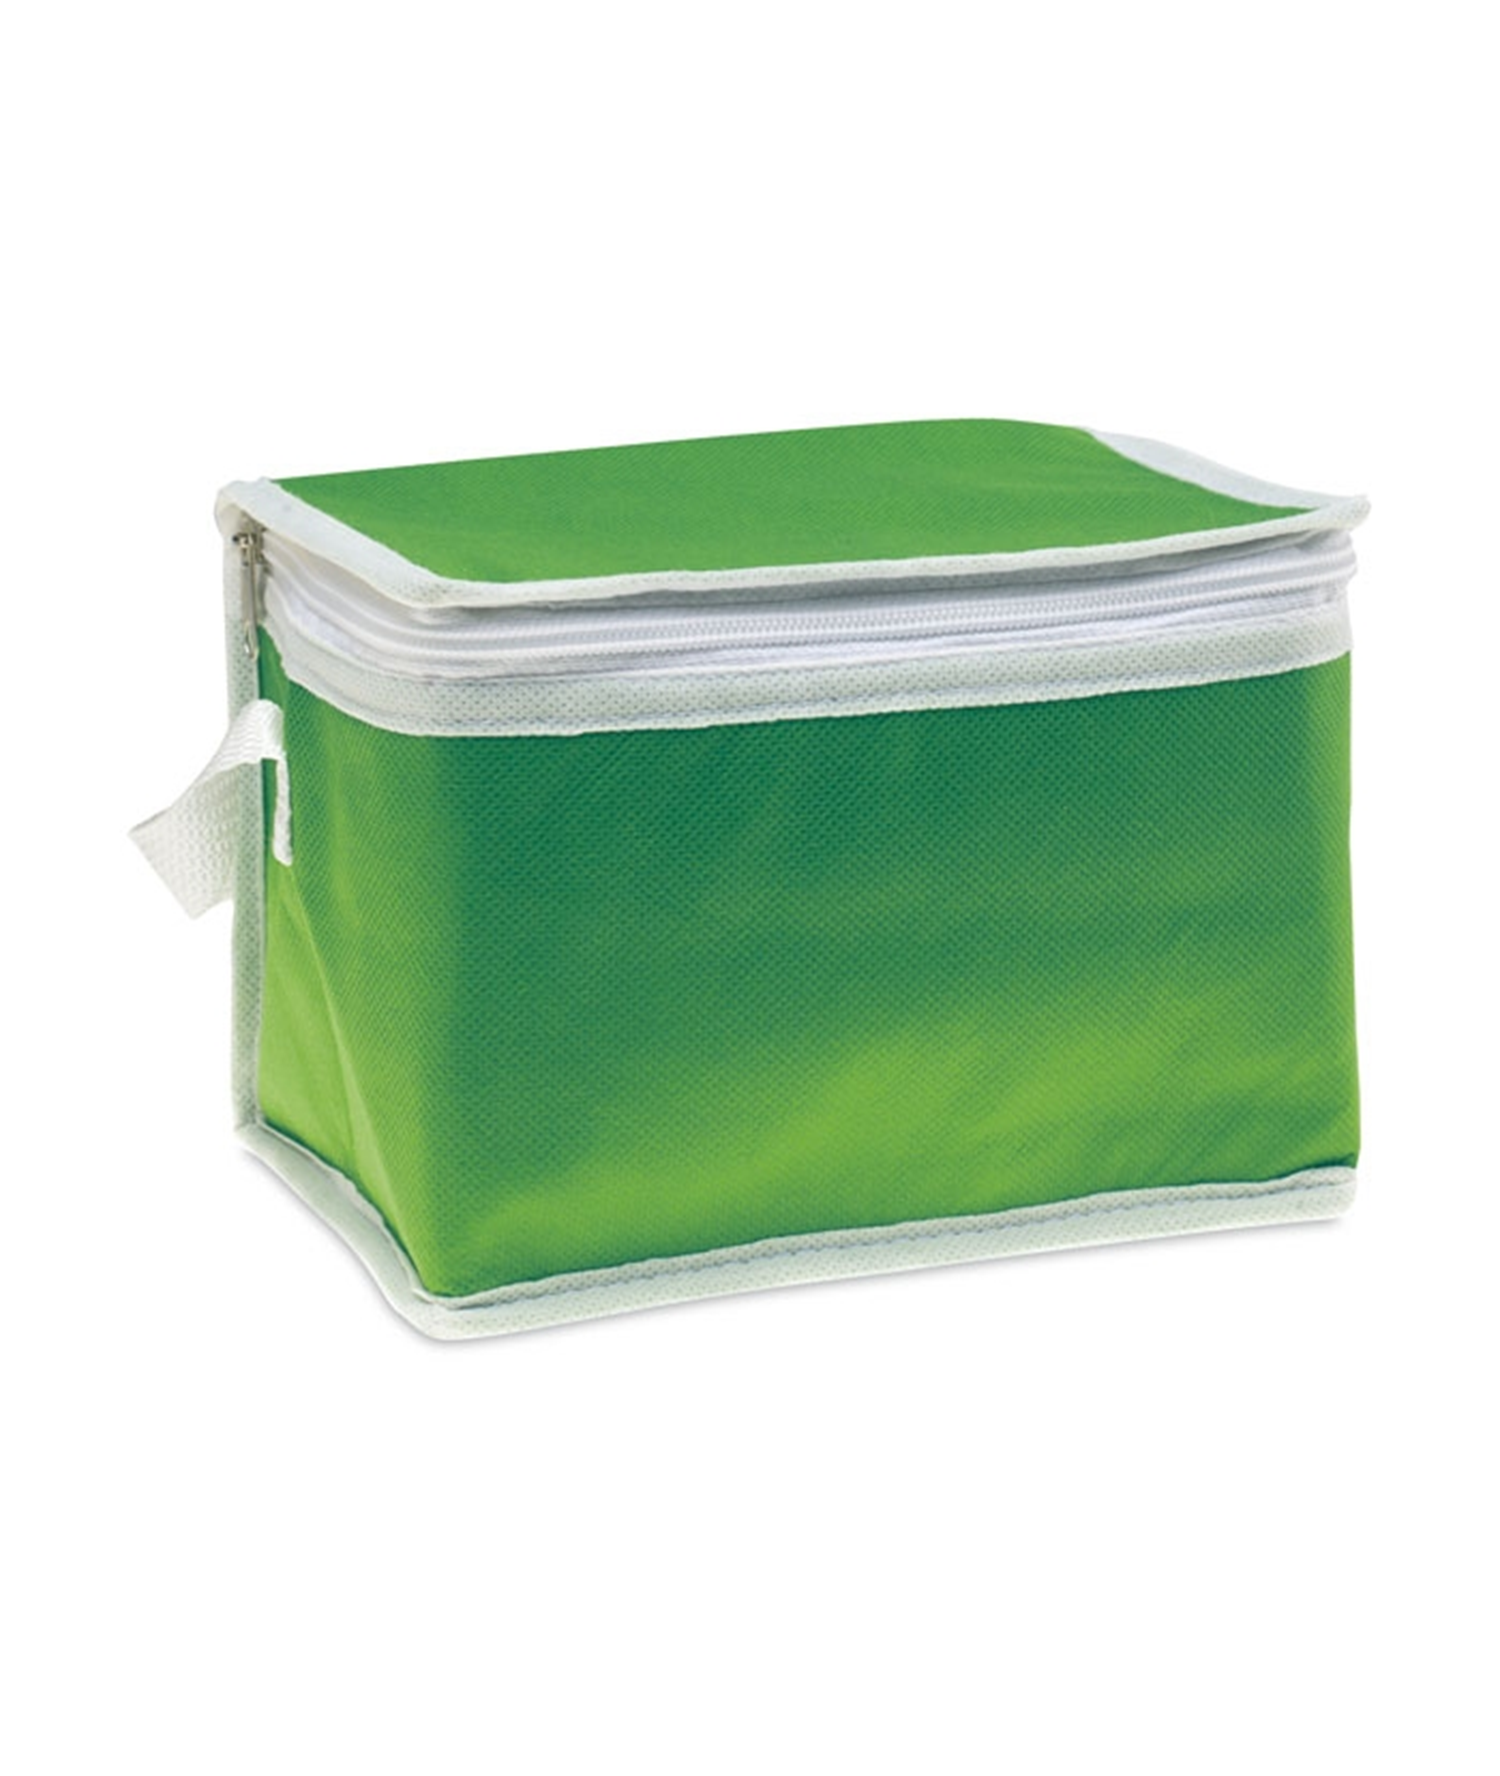 PROMOCOOL - NONWOVEN 6 CAN COOLER BAG